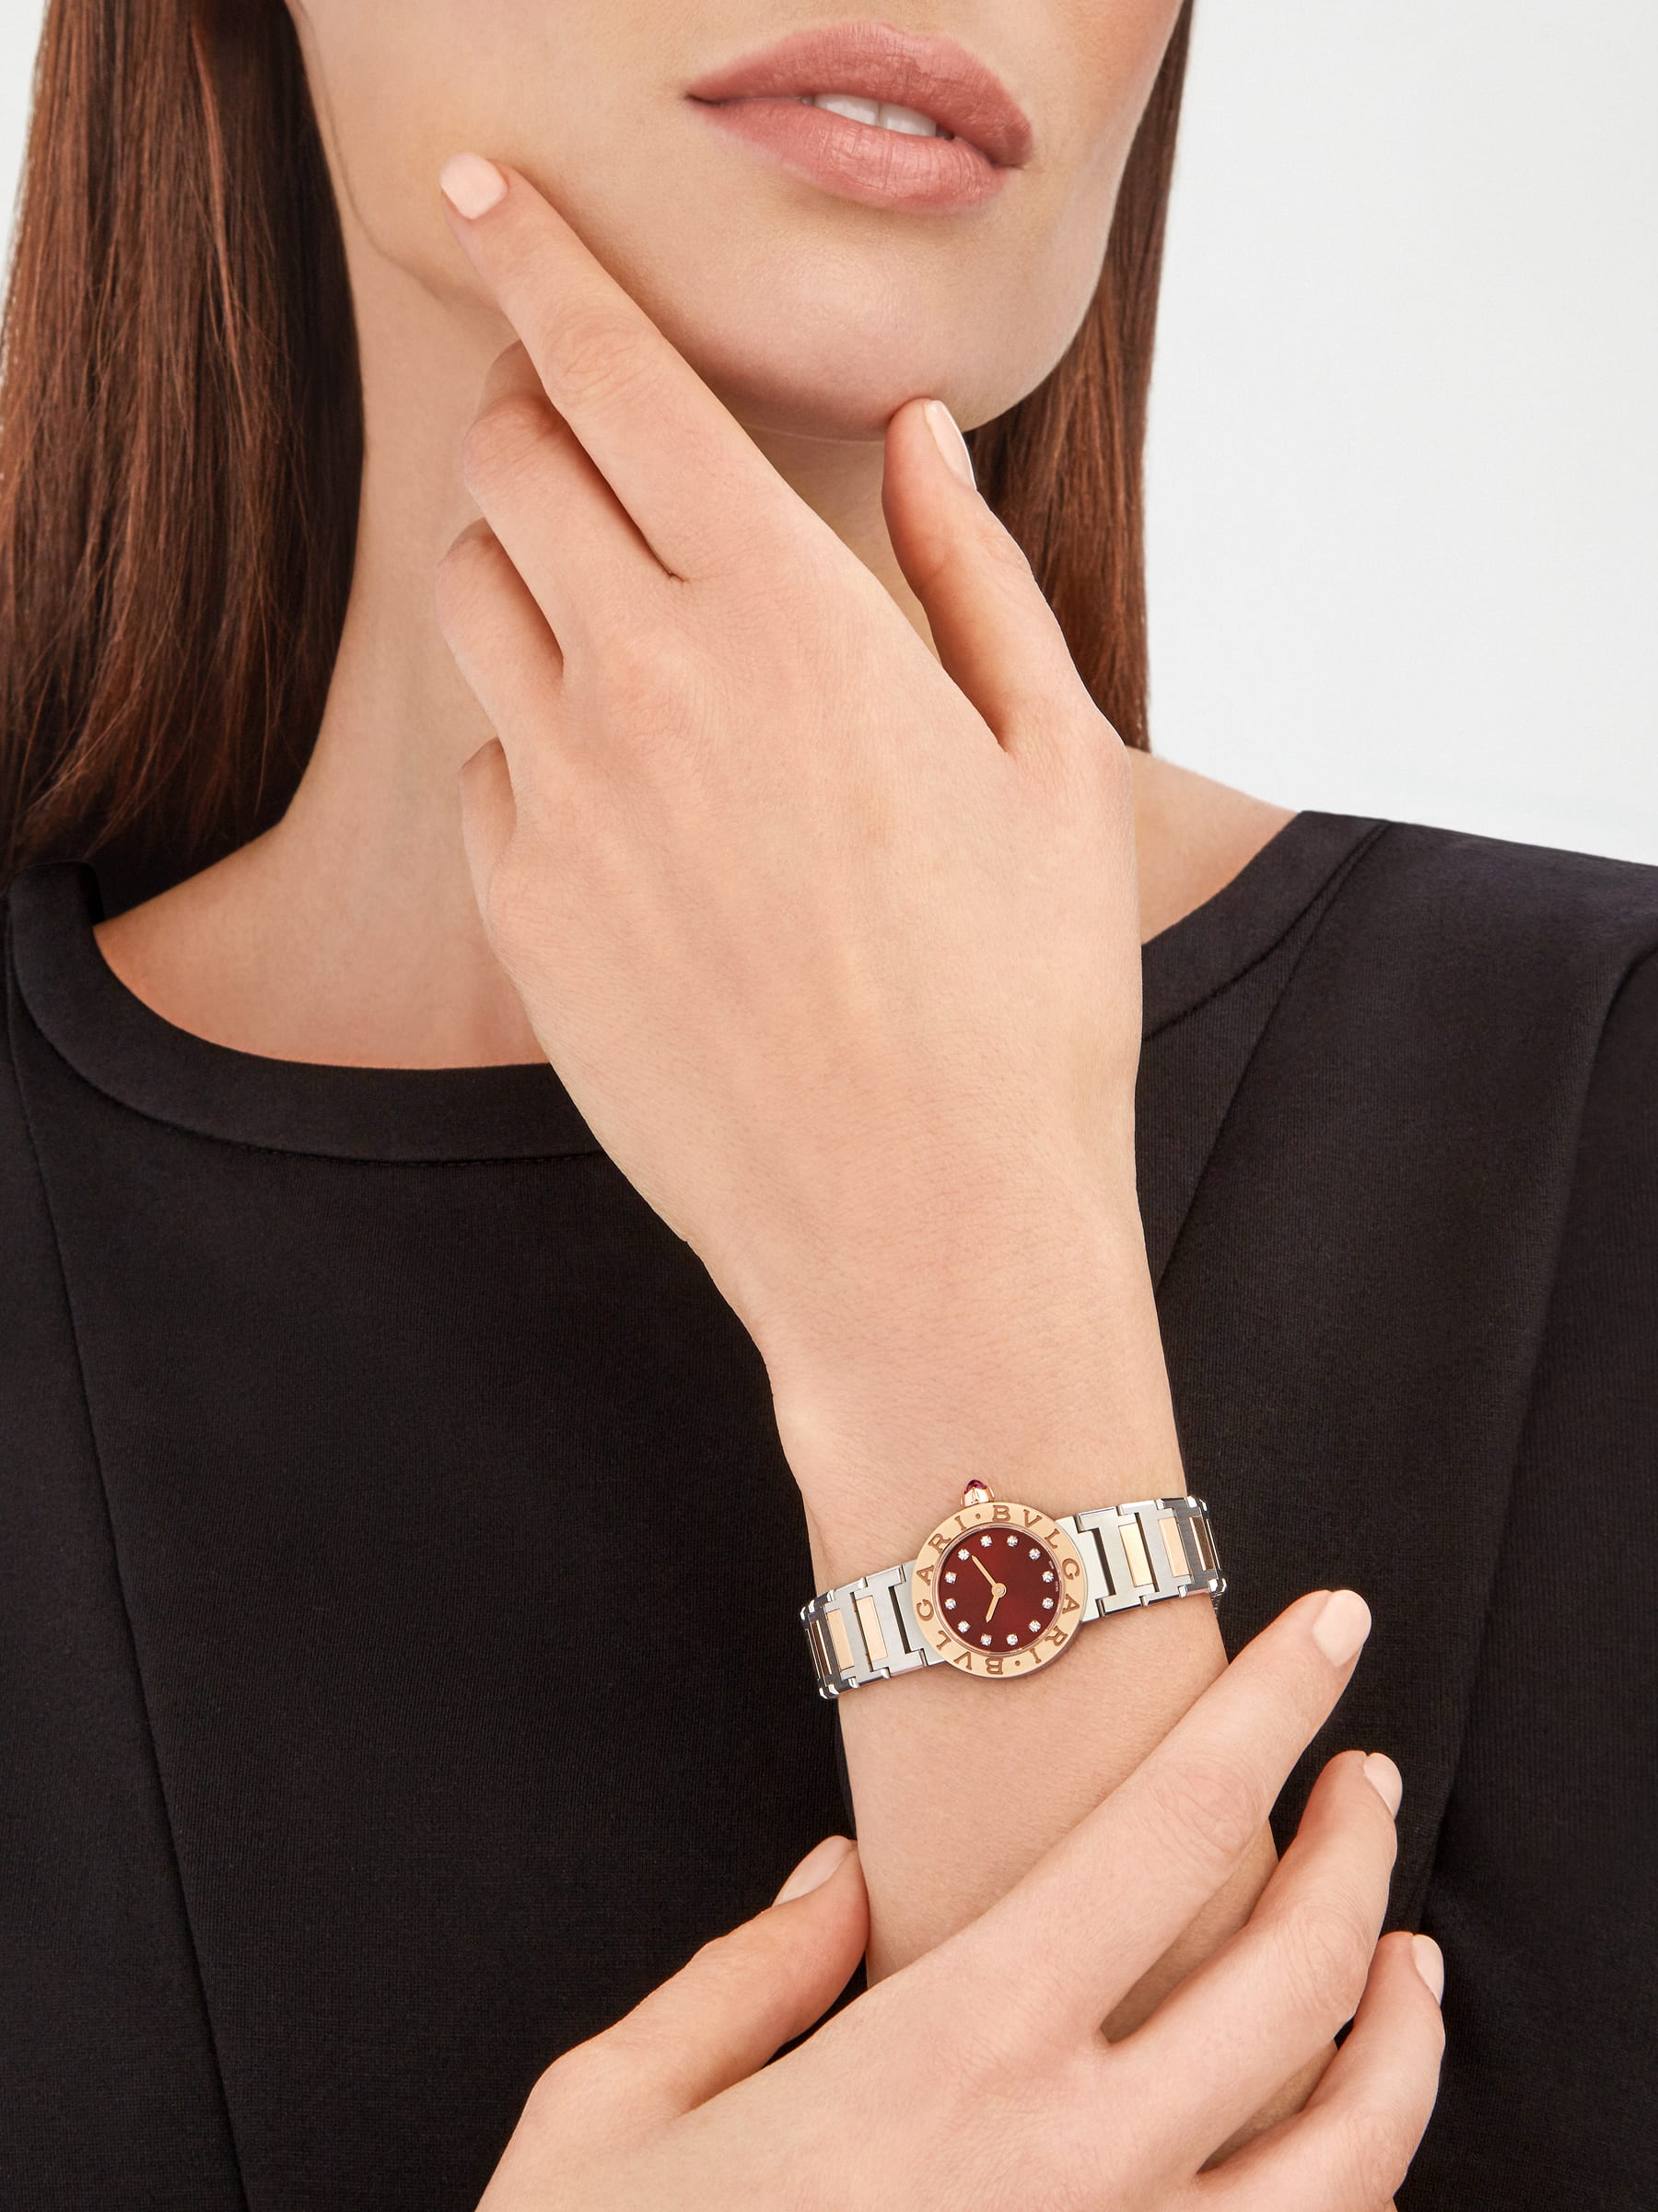 BVLGARI BVLGARI watch in 18 kt rose gold and stainless steel case and bracelet, 18 kt rose gold bezel engraved with double logo, brown satiné soleil lacquered dial and diamond indexes 103218 image 5